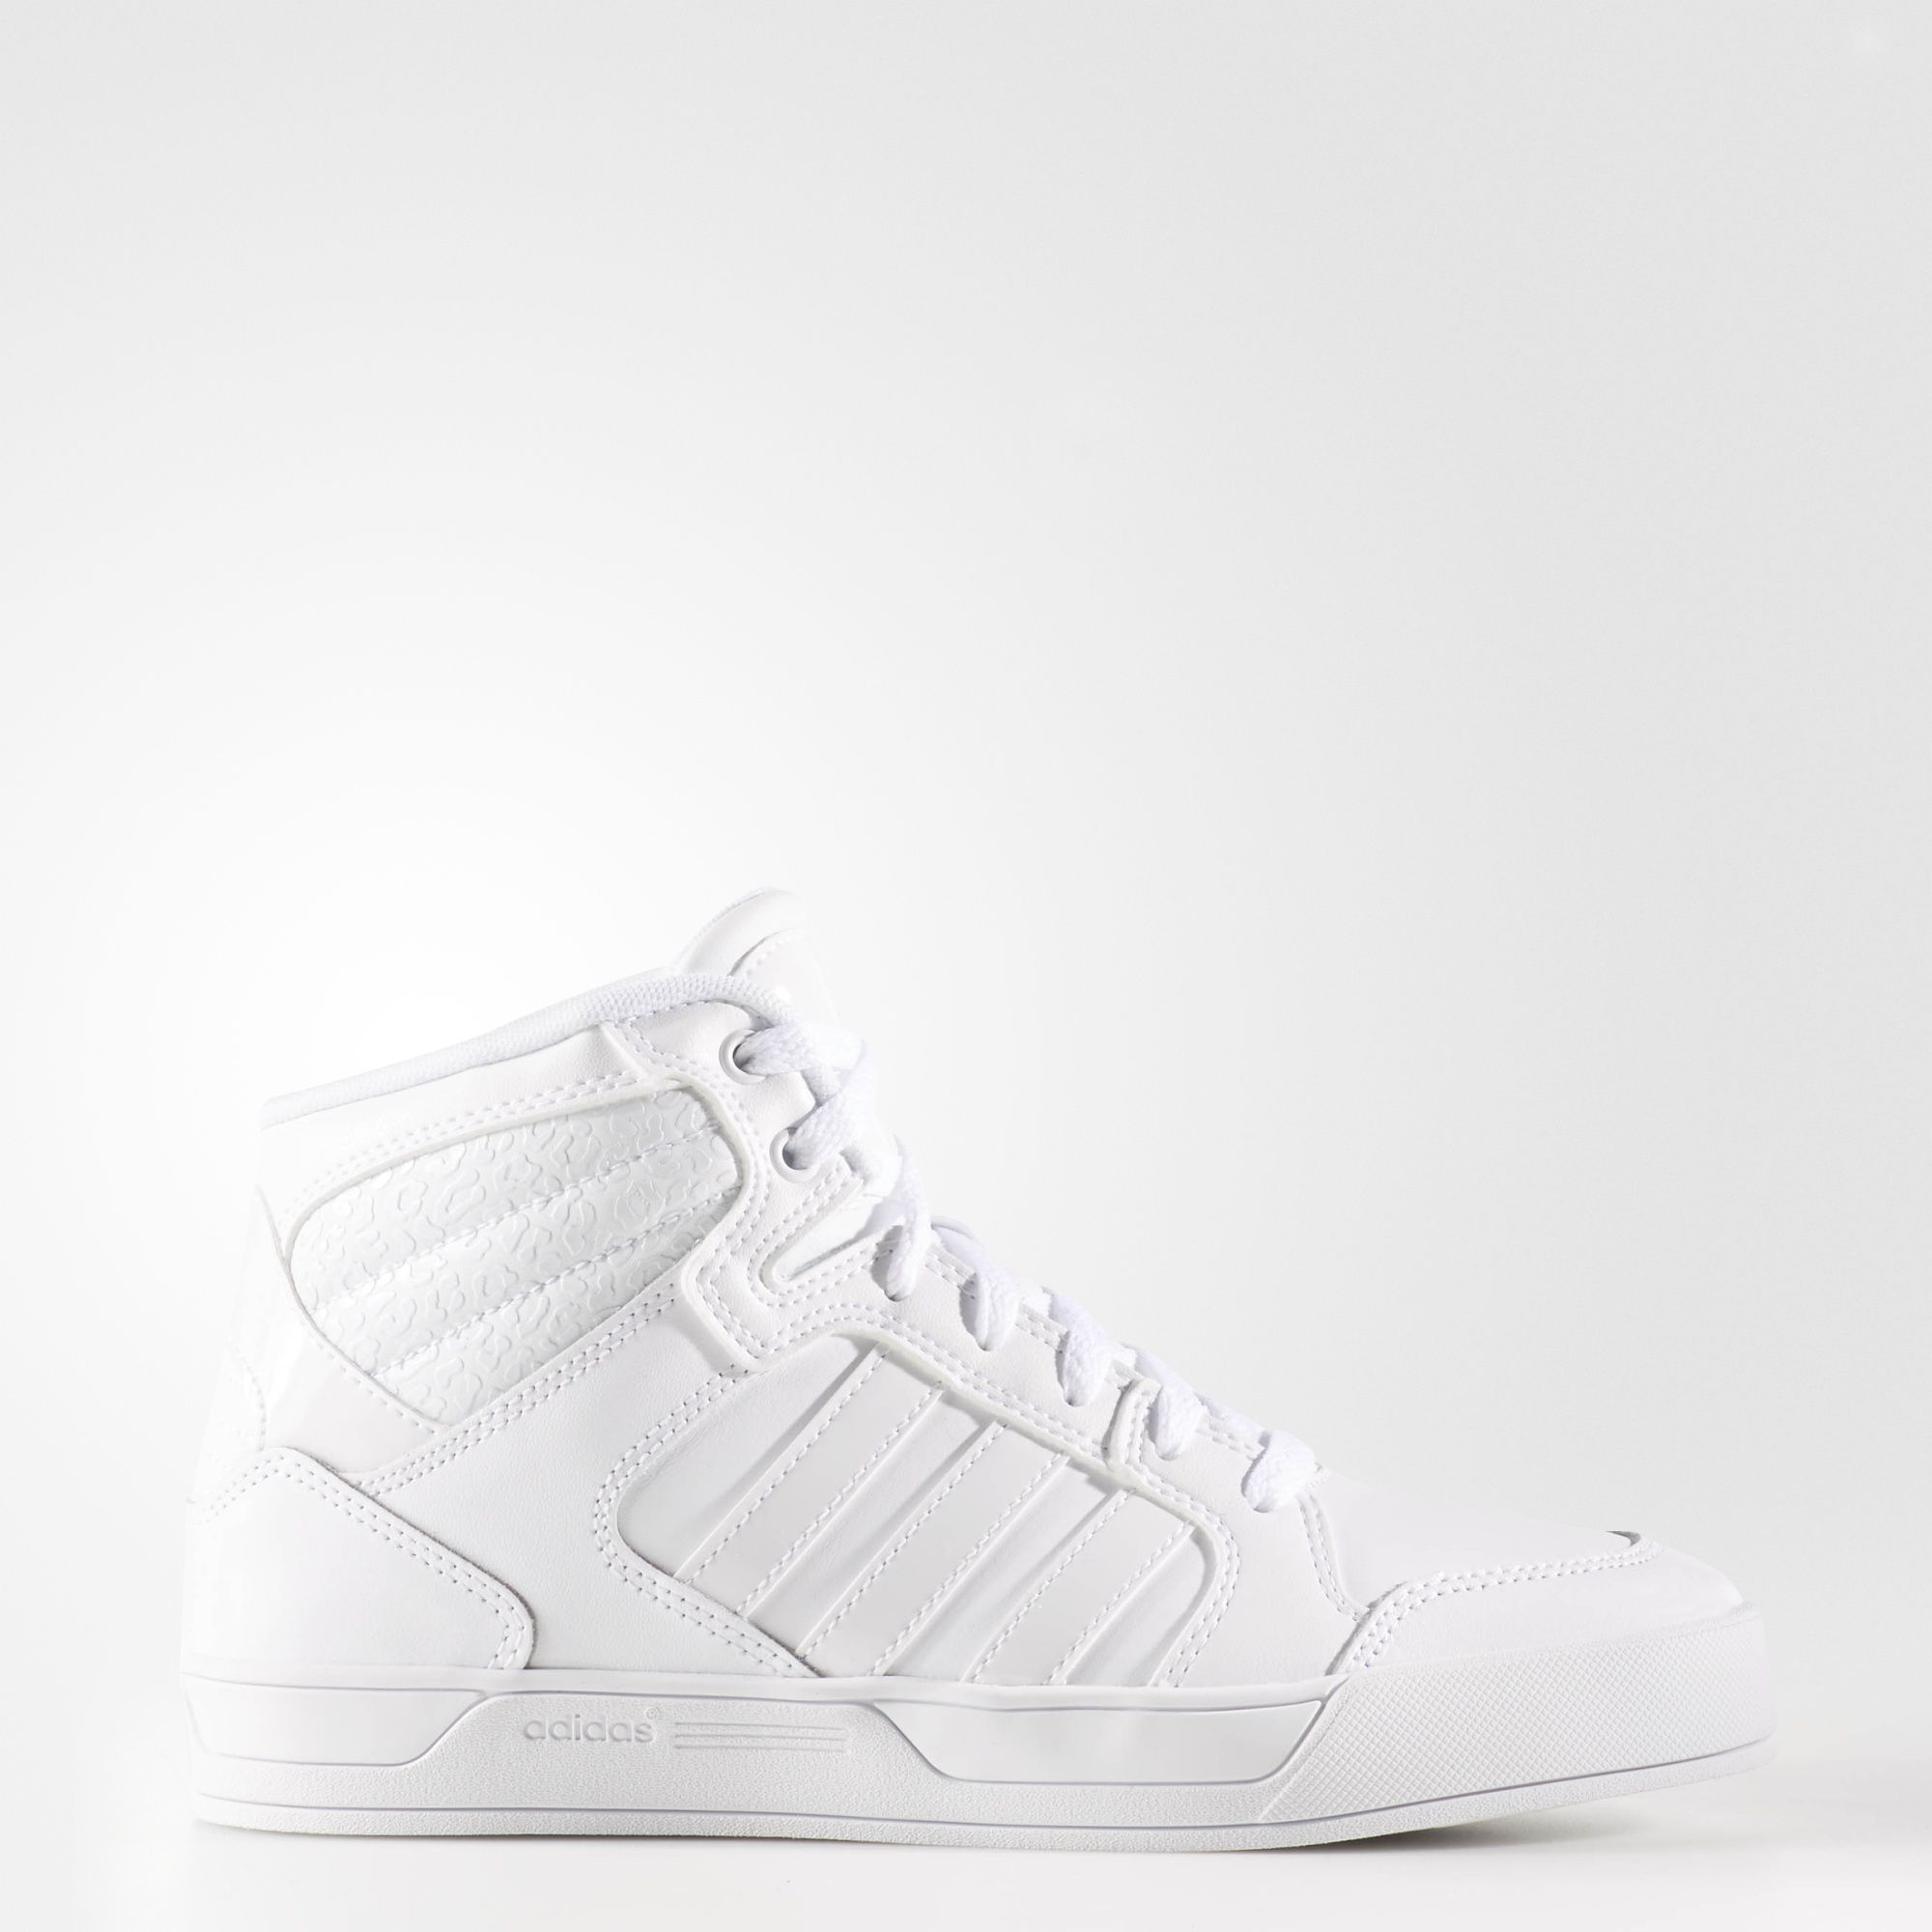 bfef520b77f9 adidas - Raleigh Mid Shoes